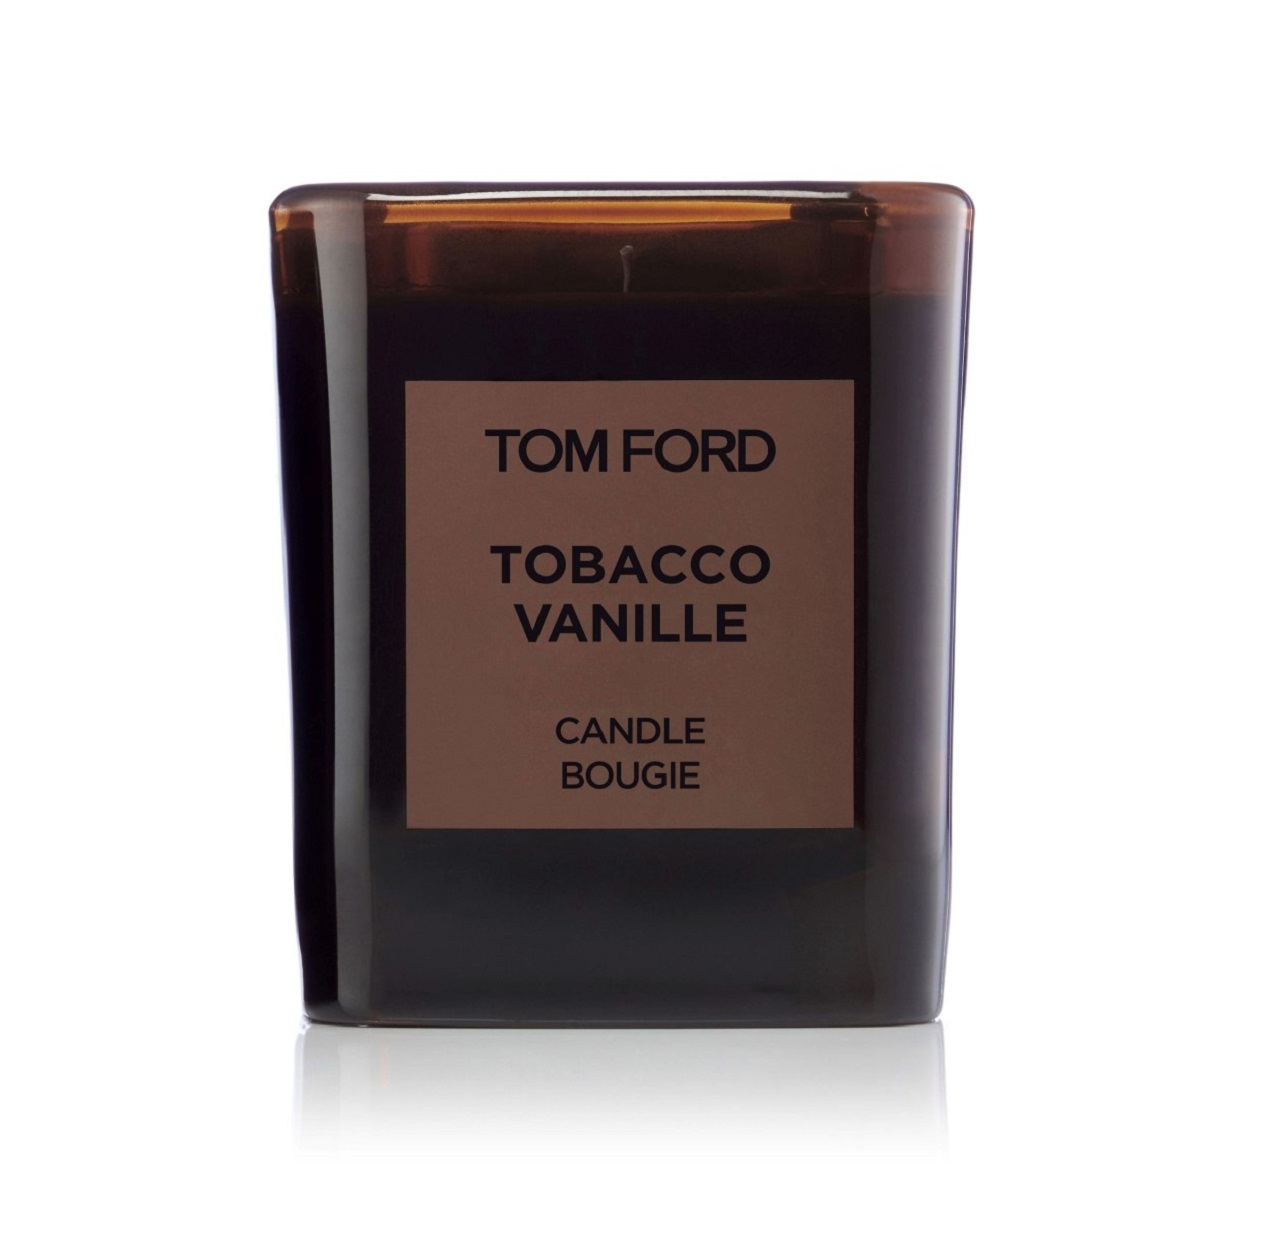 2019 holiday gift guide tom ford candle